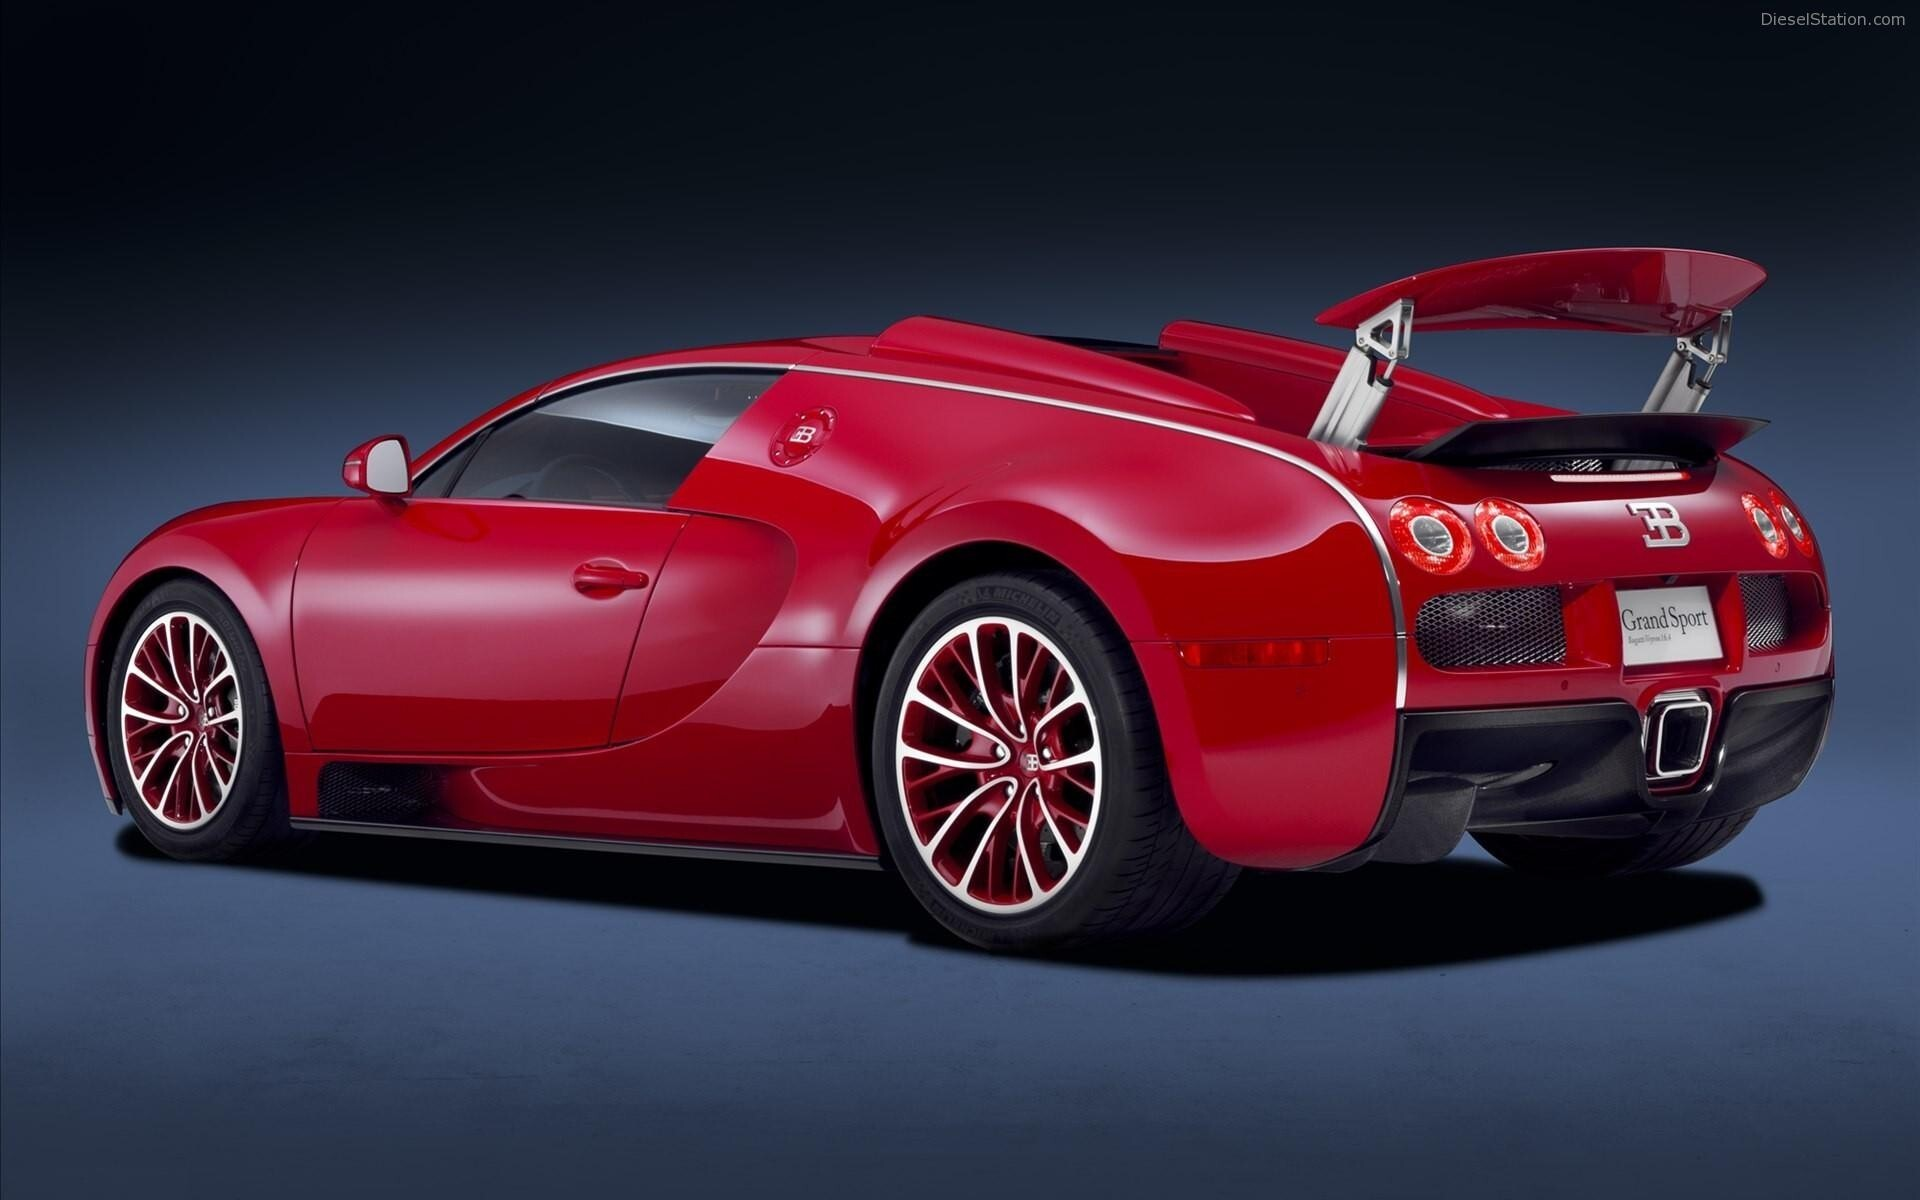 Red Bugatti Veyron Grand Sport Car Wallpapers Hd Wallpapers